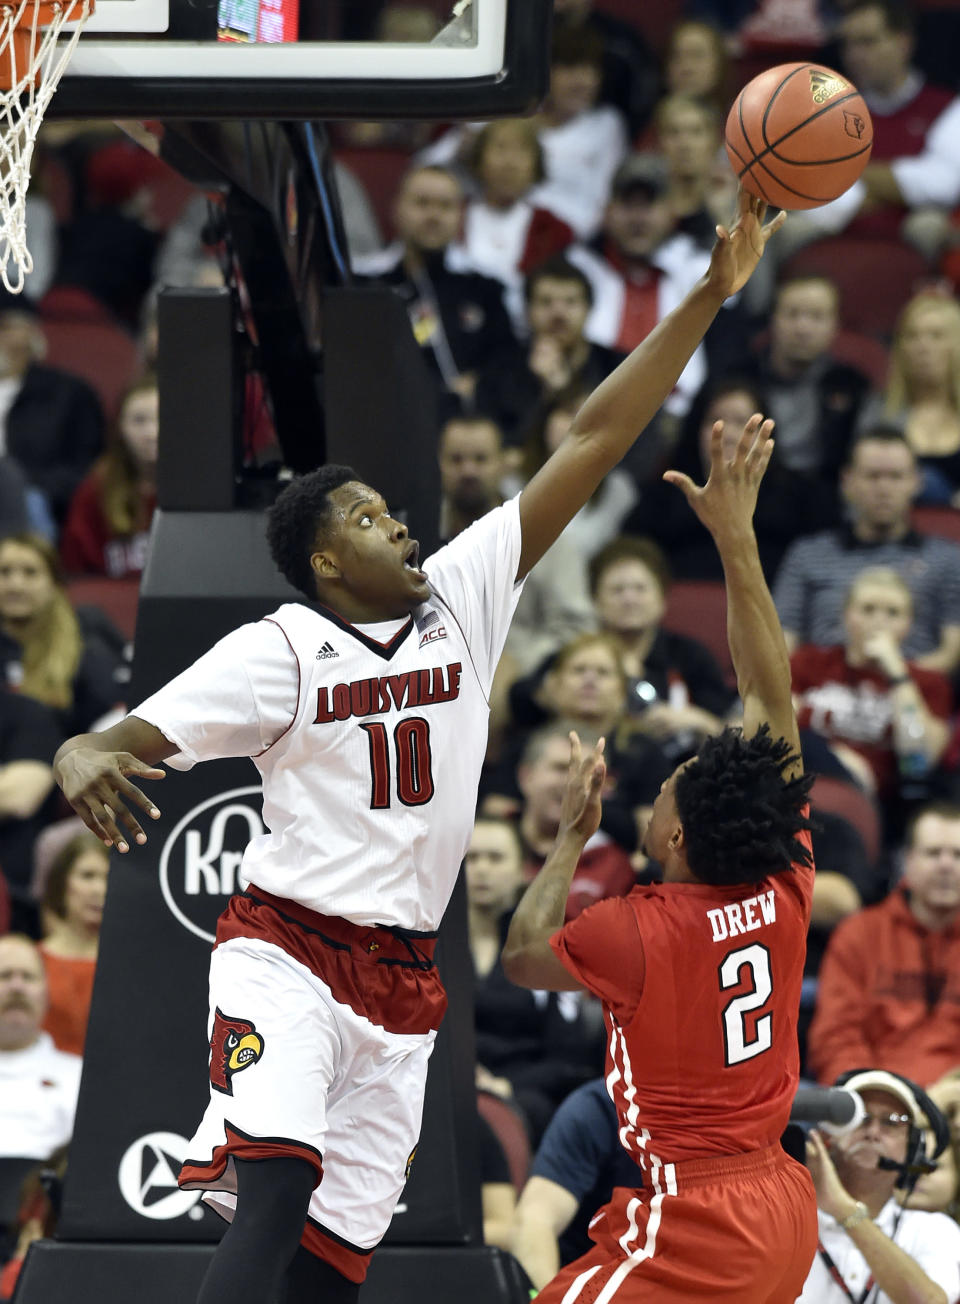 Louisville's Jaylen Johnson, left. blocks the shot of Cal State Northridge's Landon Drew during the first half of an NCAA college basketball game Tuesday Dec. 23, 2014, in Louisville, Ky. (AP Photo/Timothy D. Easley)